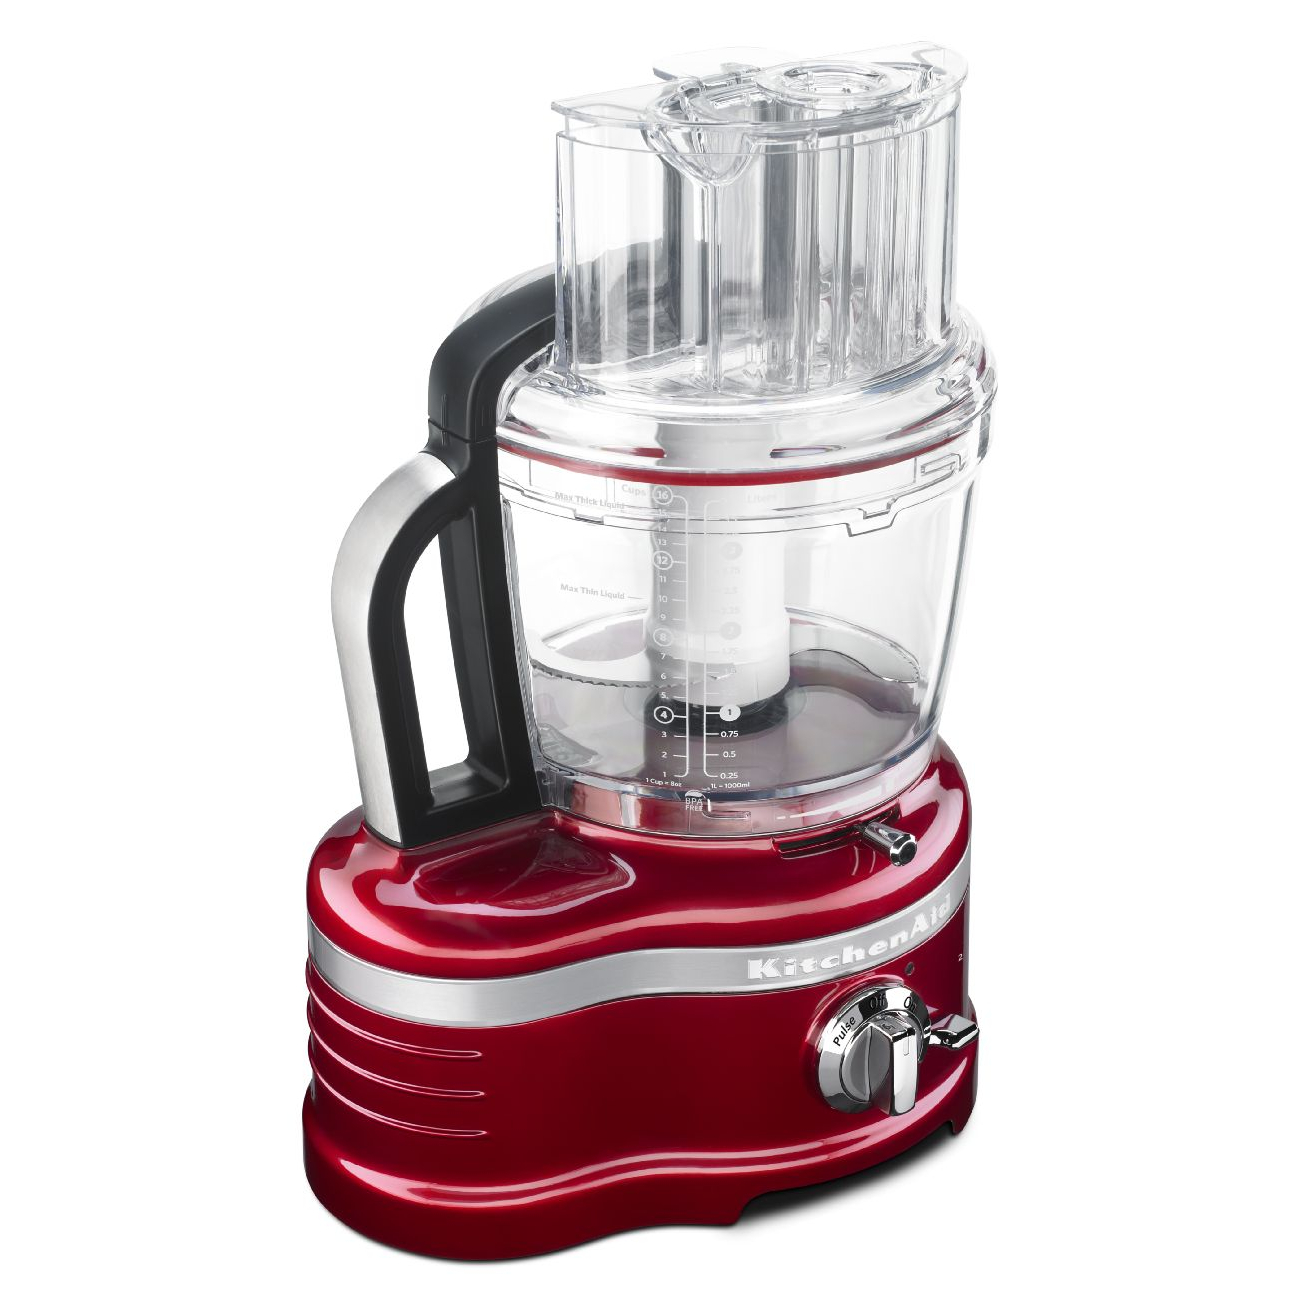 KitchenAid ProLine 16 Cup Candy Apple Red Food Processor with ExactSlice System